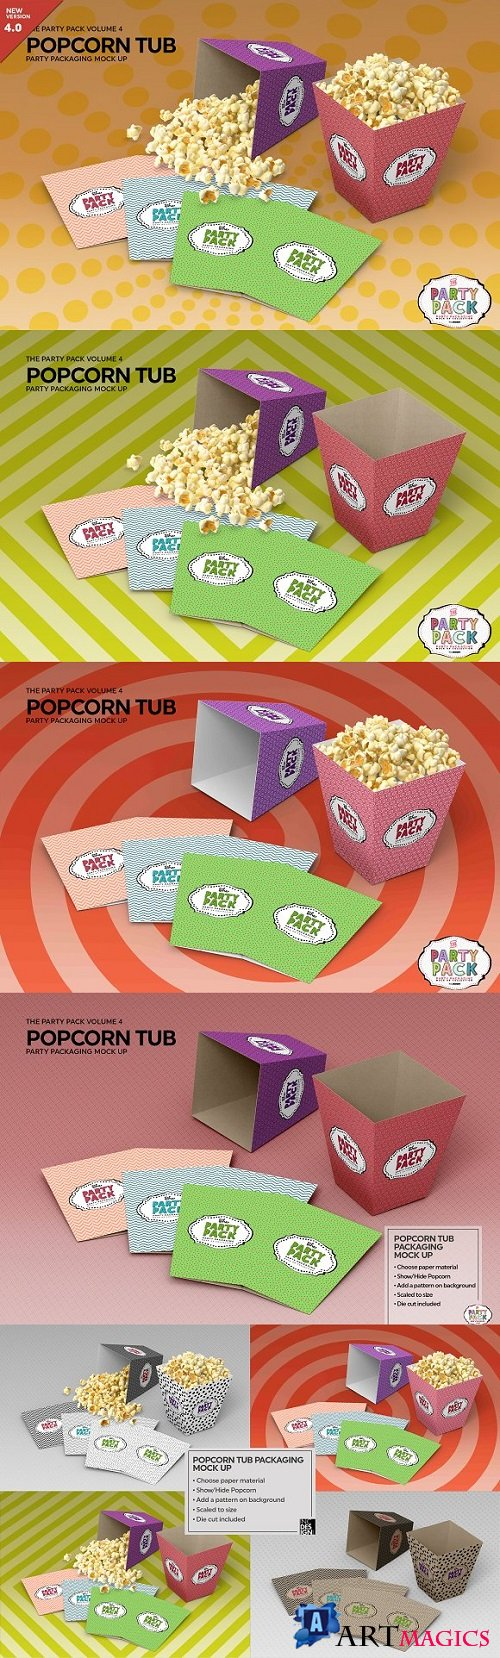 Popcorn Tub Packaging Mock Up - 2198469